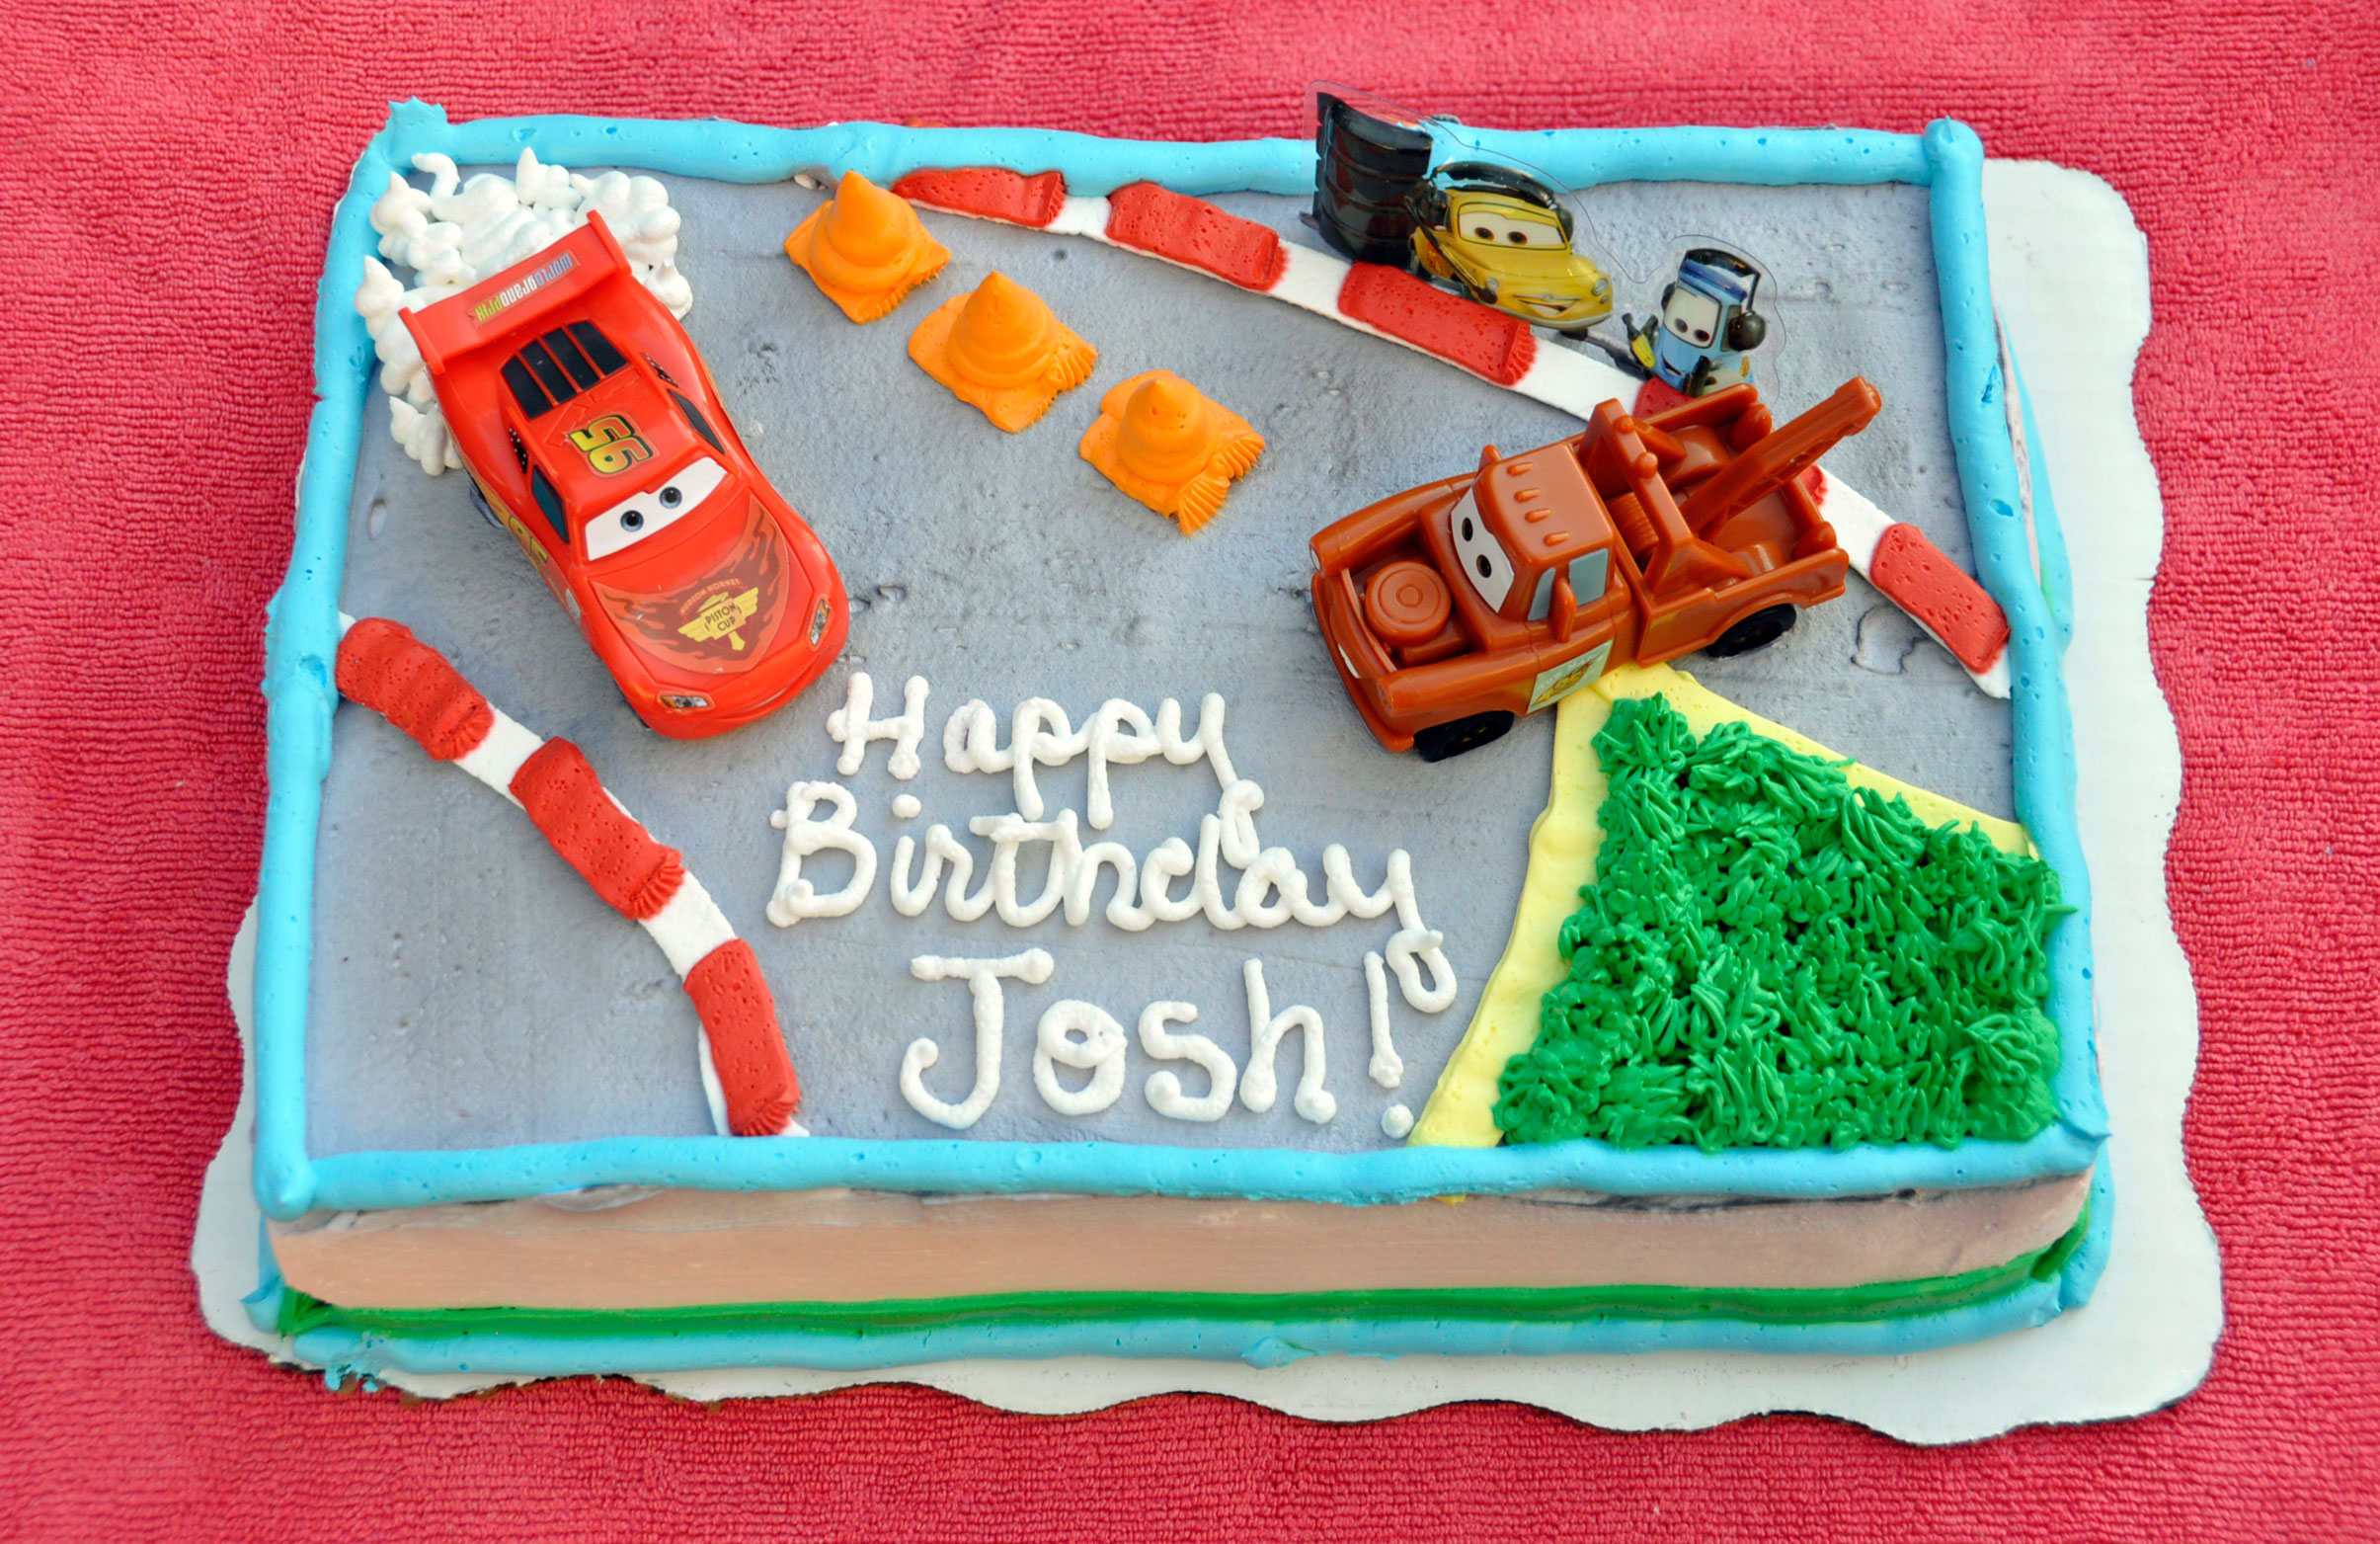 Astonishing Pixar Cars Themed Custom Cake Funny Birthday Cards Online Barepcheapnameinfo